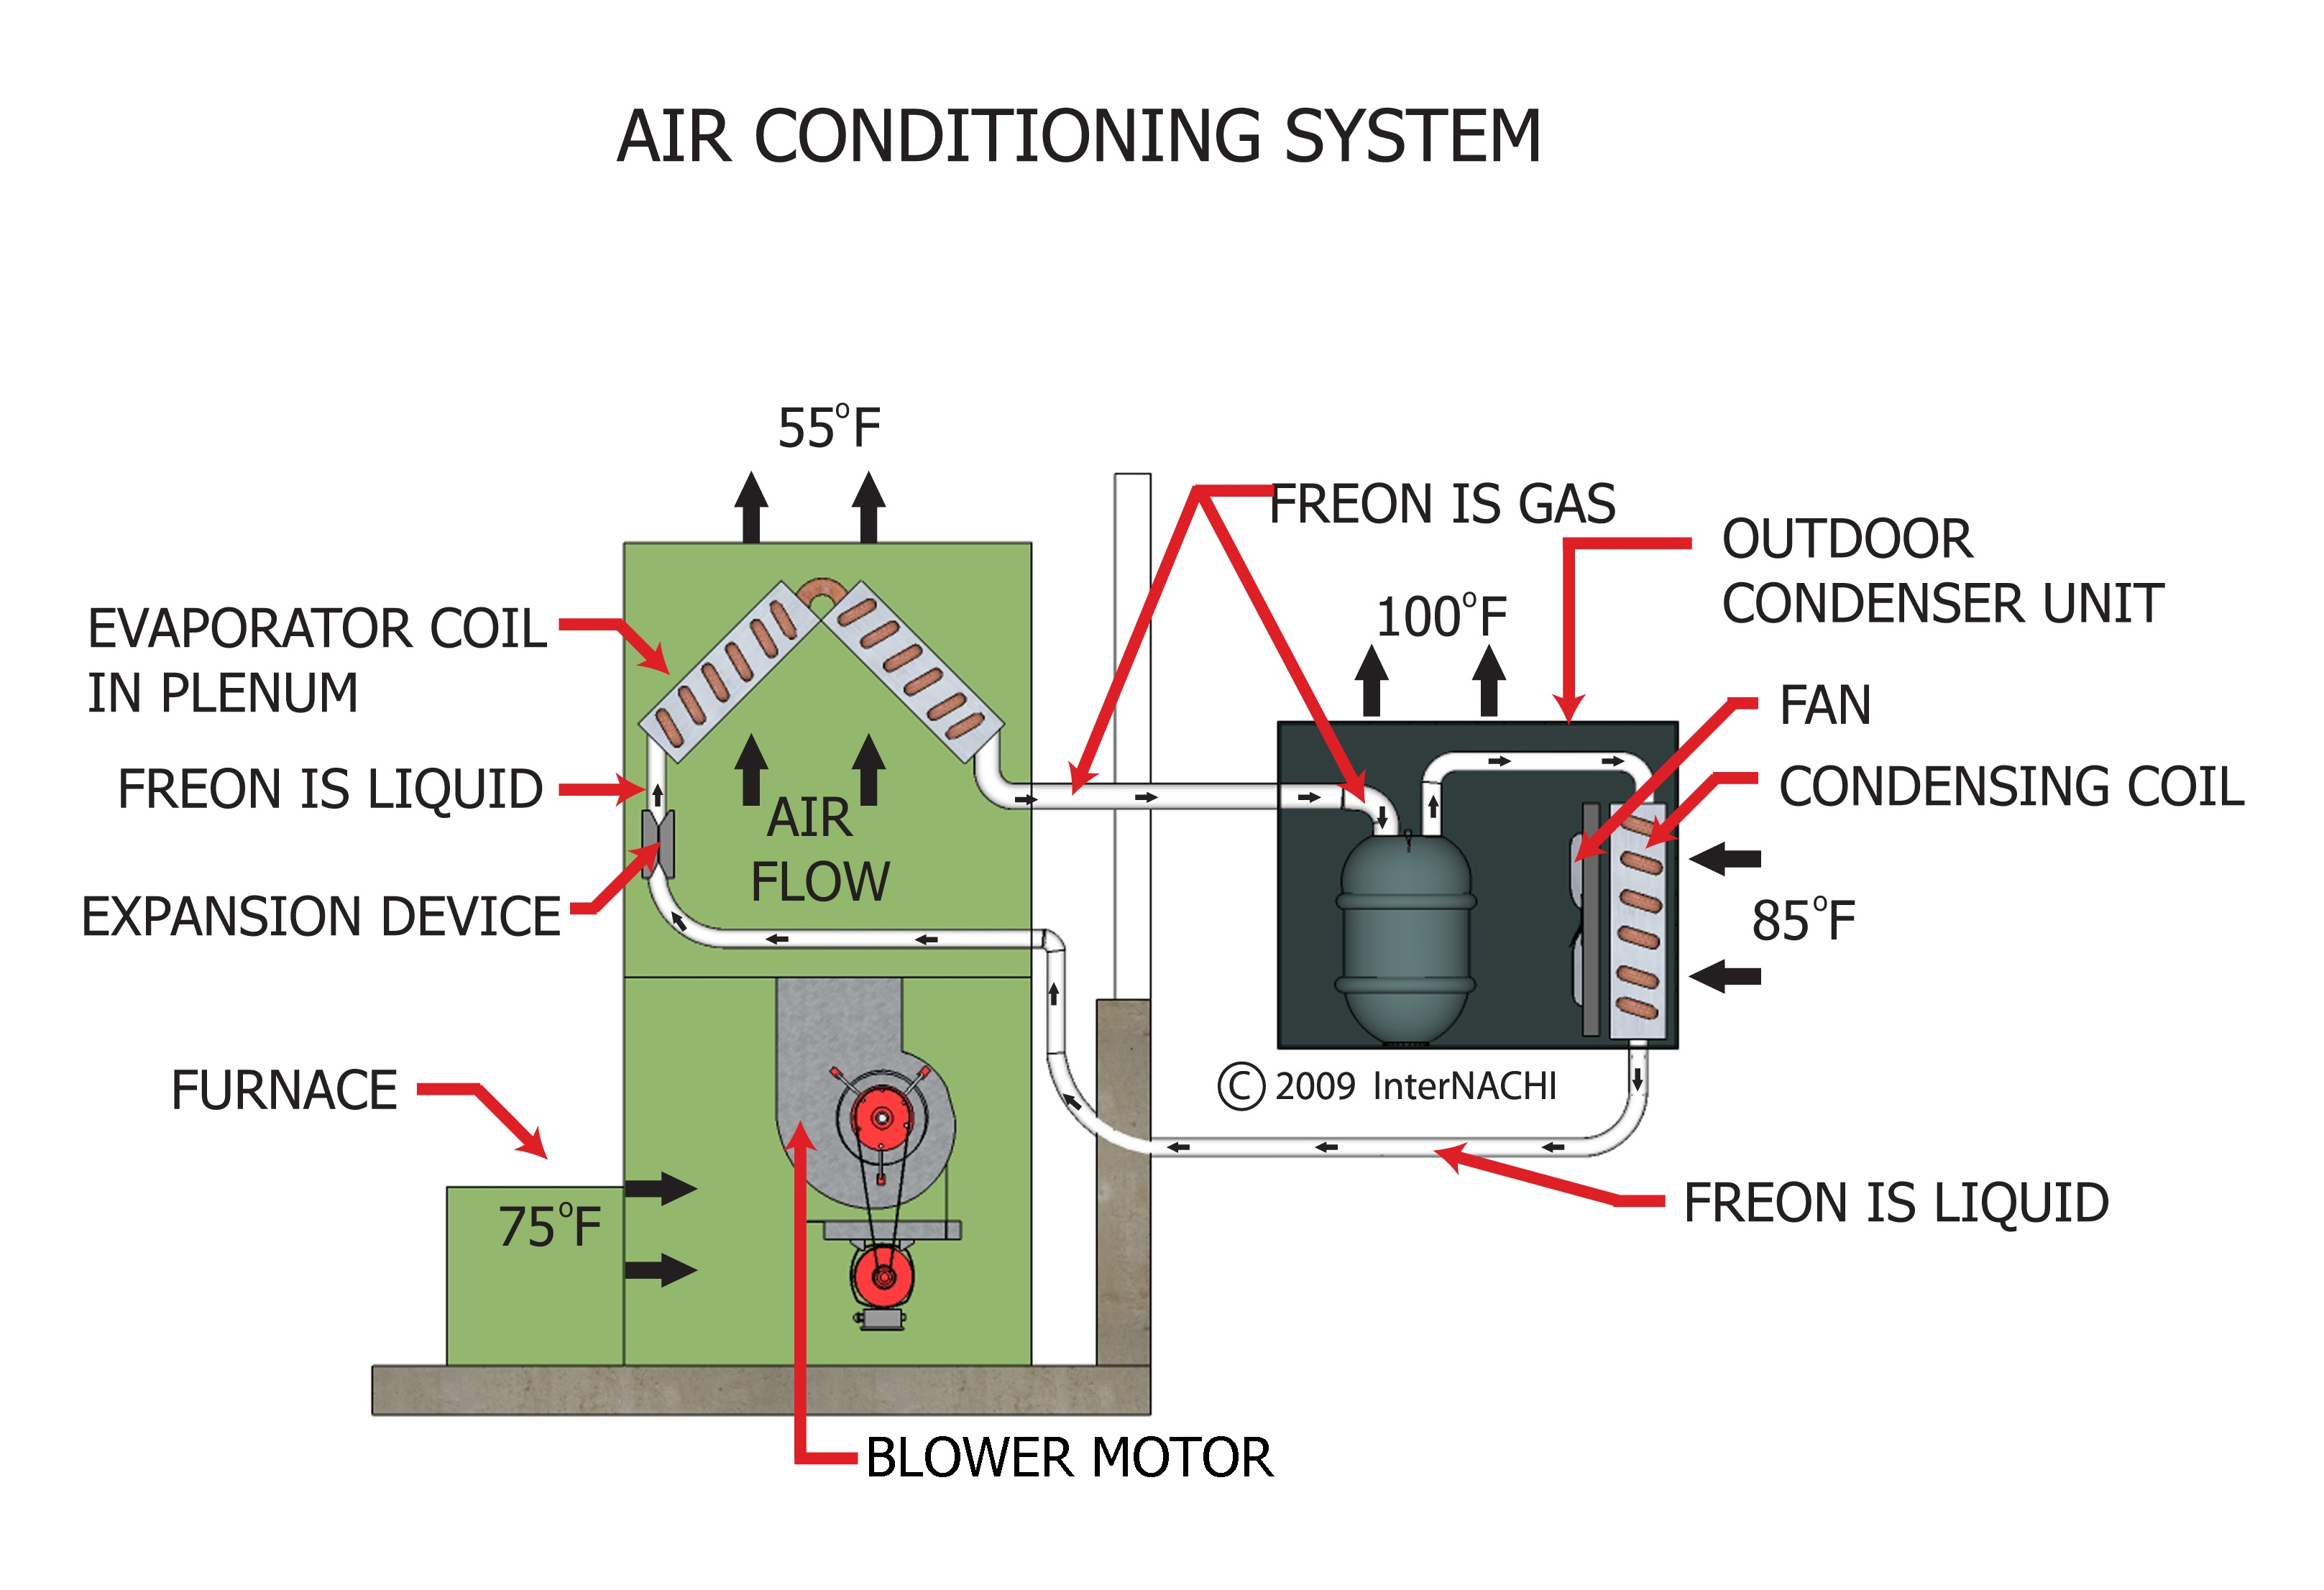 #B11A1F Index Of /gallery/images/hvac/cooling Highly Rated 8819 Air Conditioning Installation Dubbo wallpapers with 3233x2212 px on helpvideos.info - Air Conditioners, Air Coolers and more